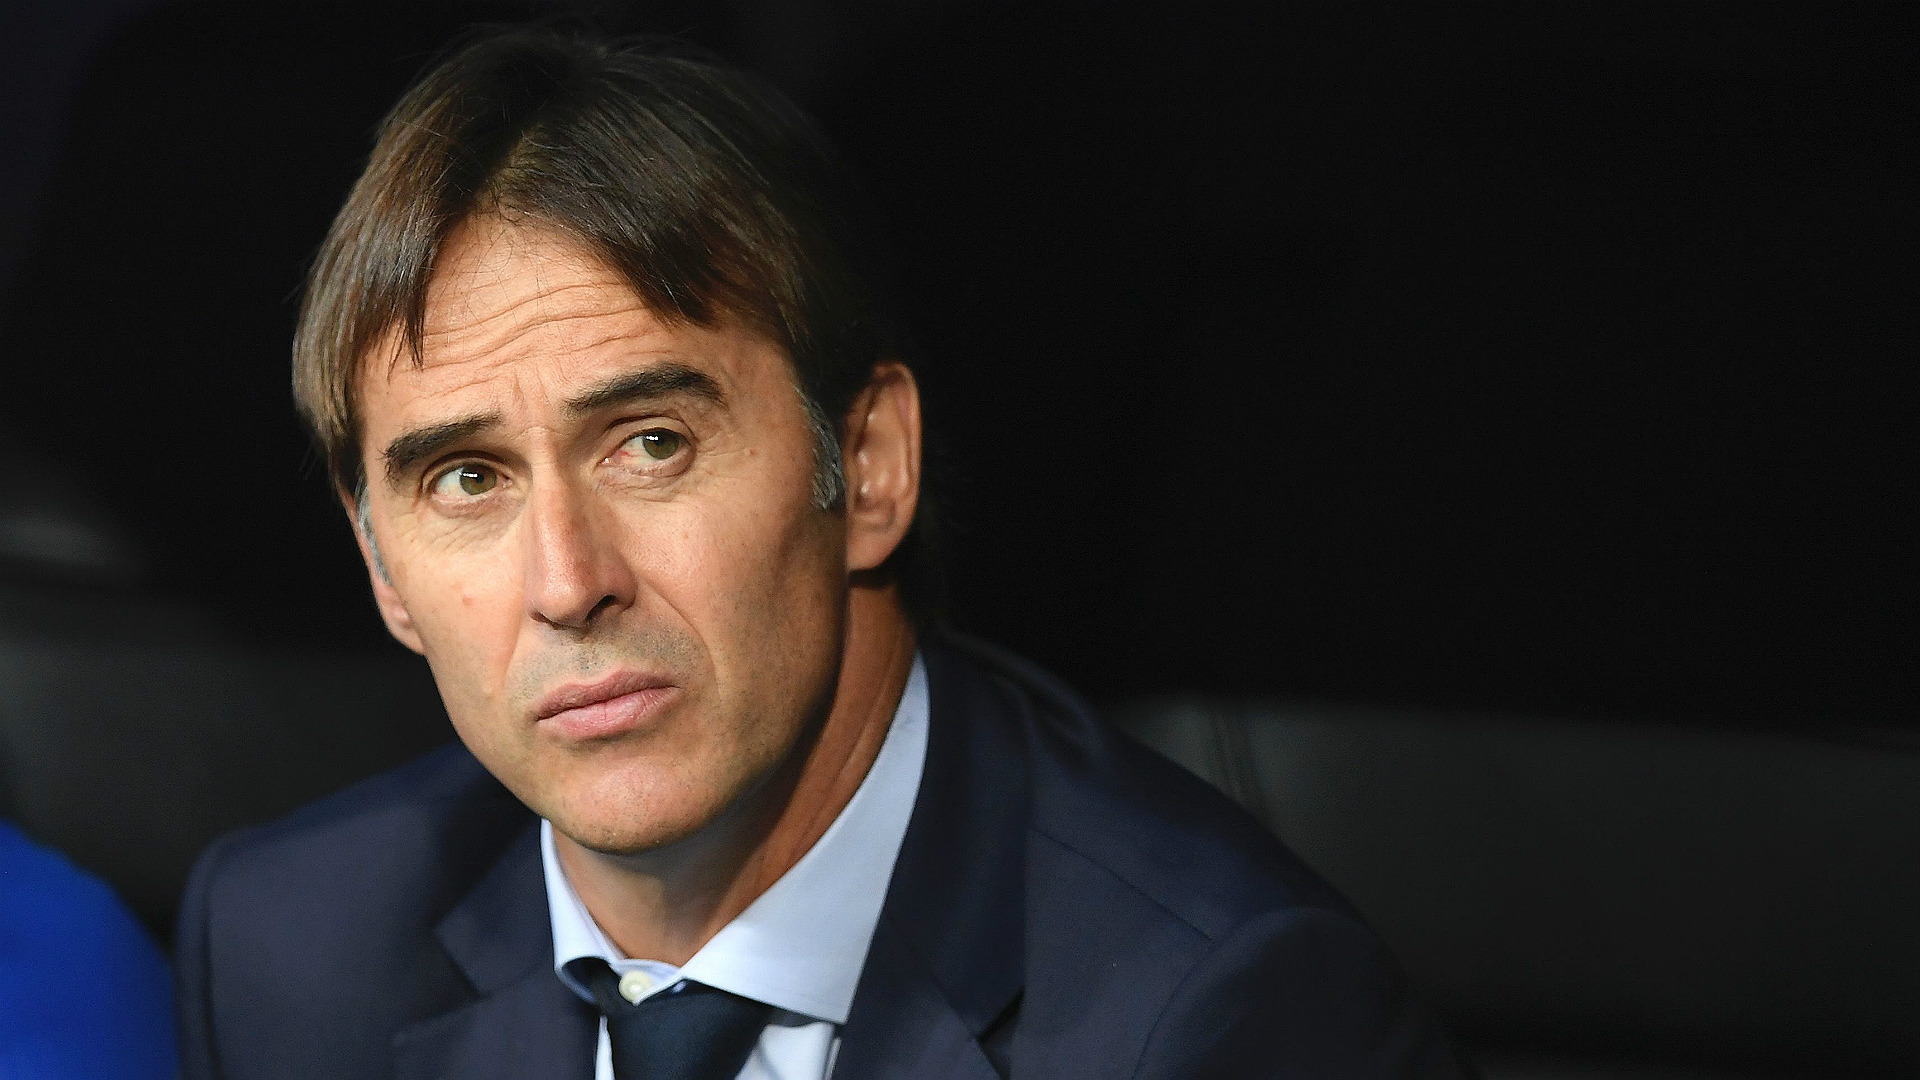 Julen Lopetegui Spain Italy WC Qualifiers